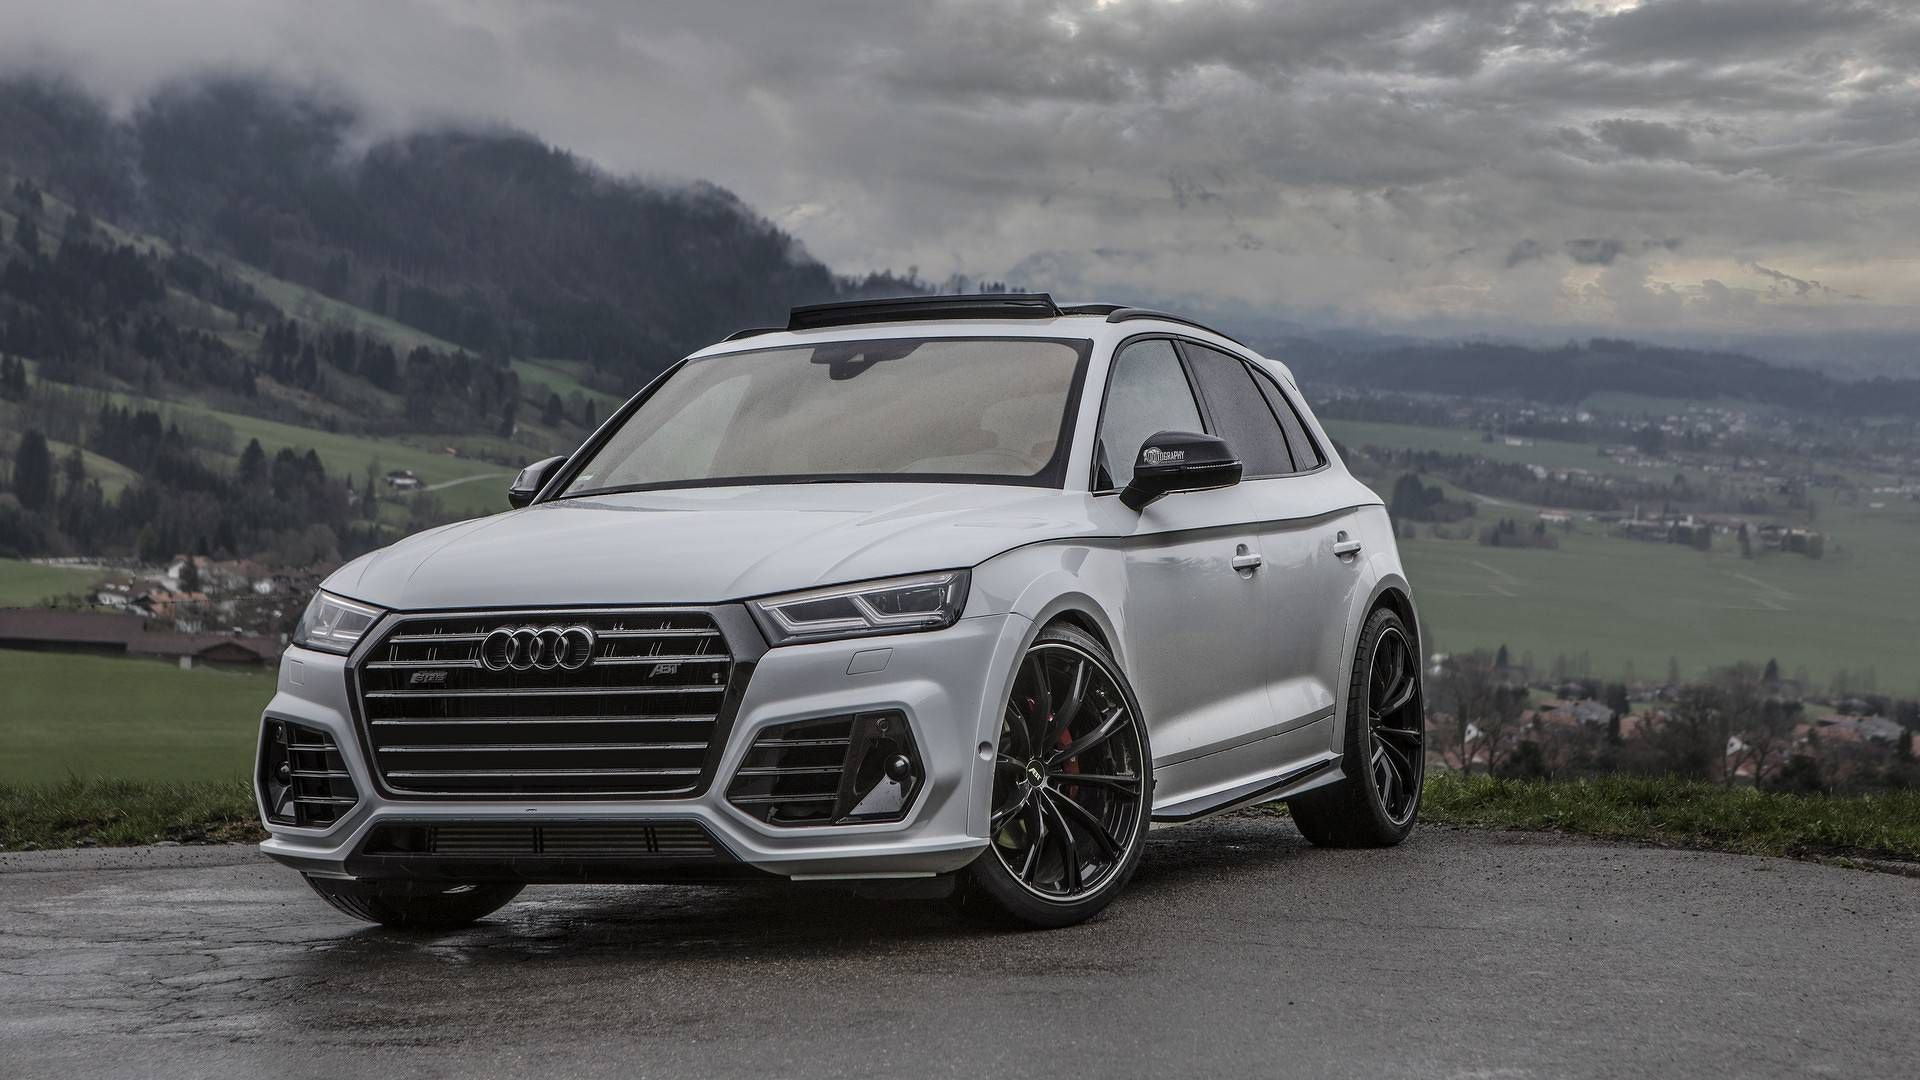 Audi Sq5 Upgraded By Abt Takes Scenic Route For Photo Shoot Audi Sq5 Scenic Routes